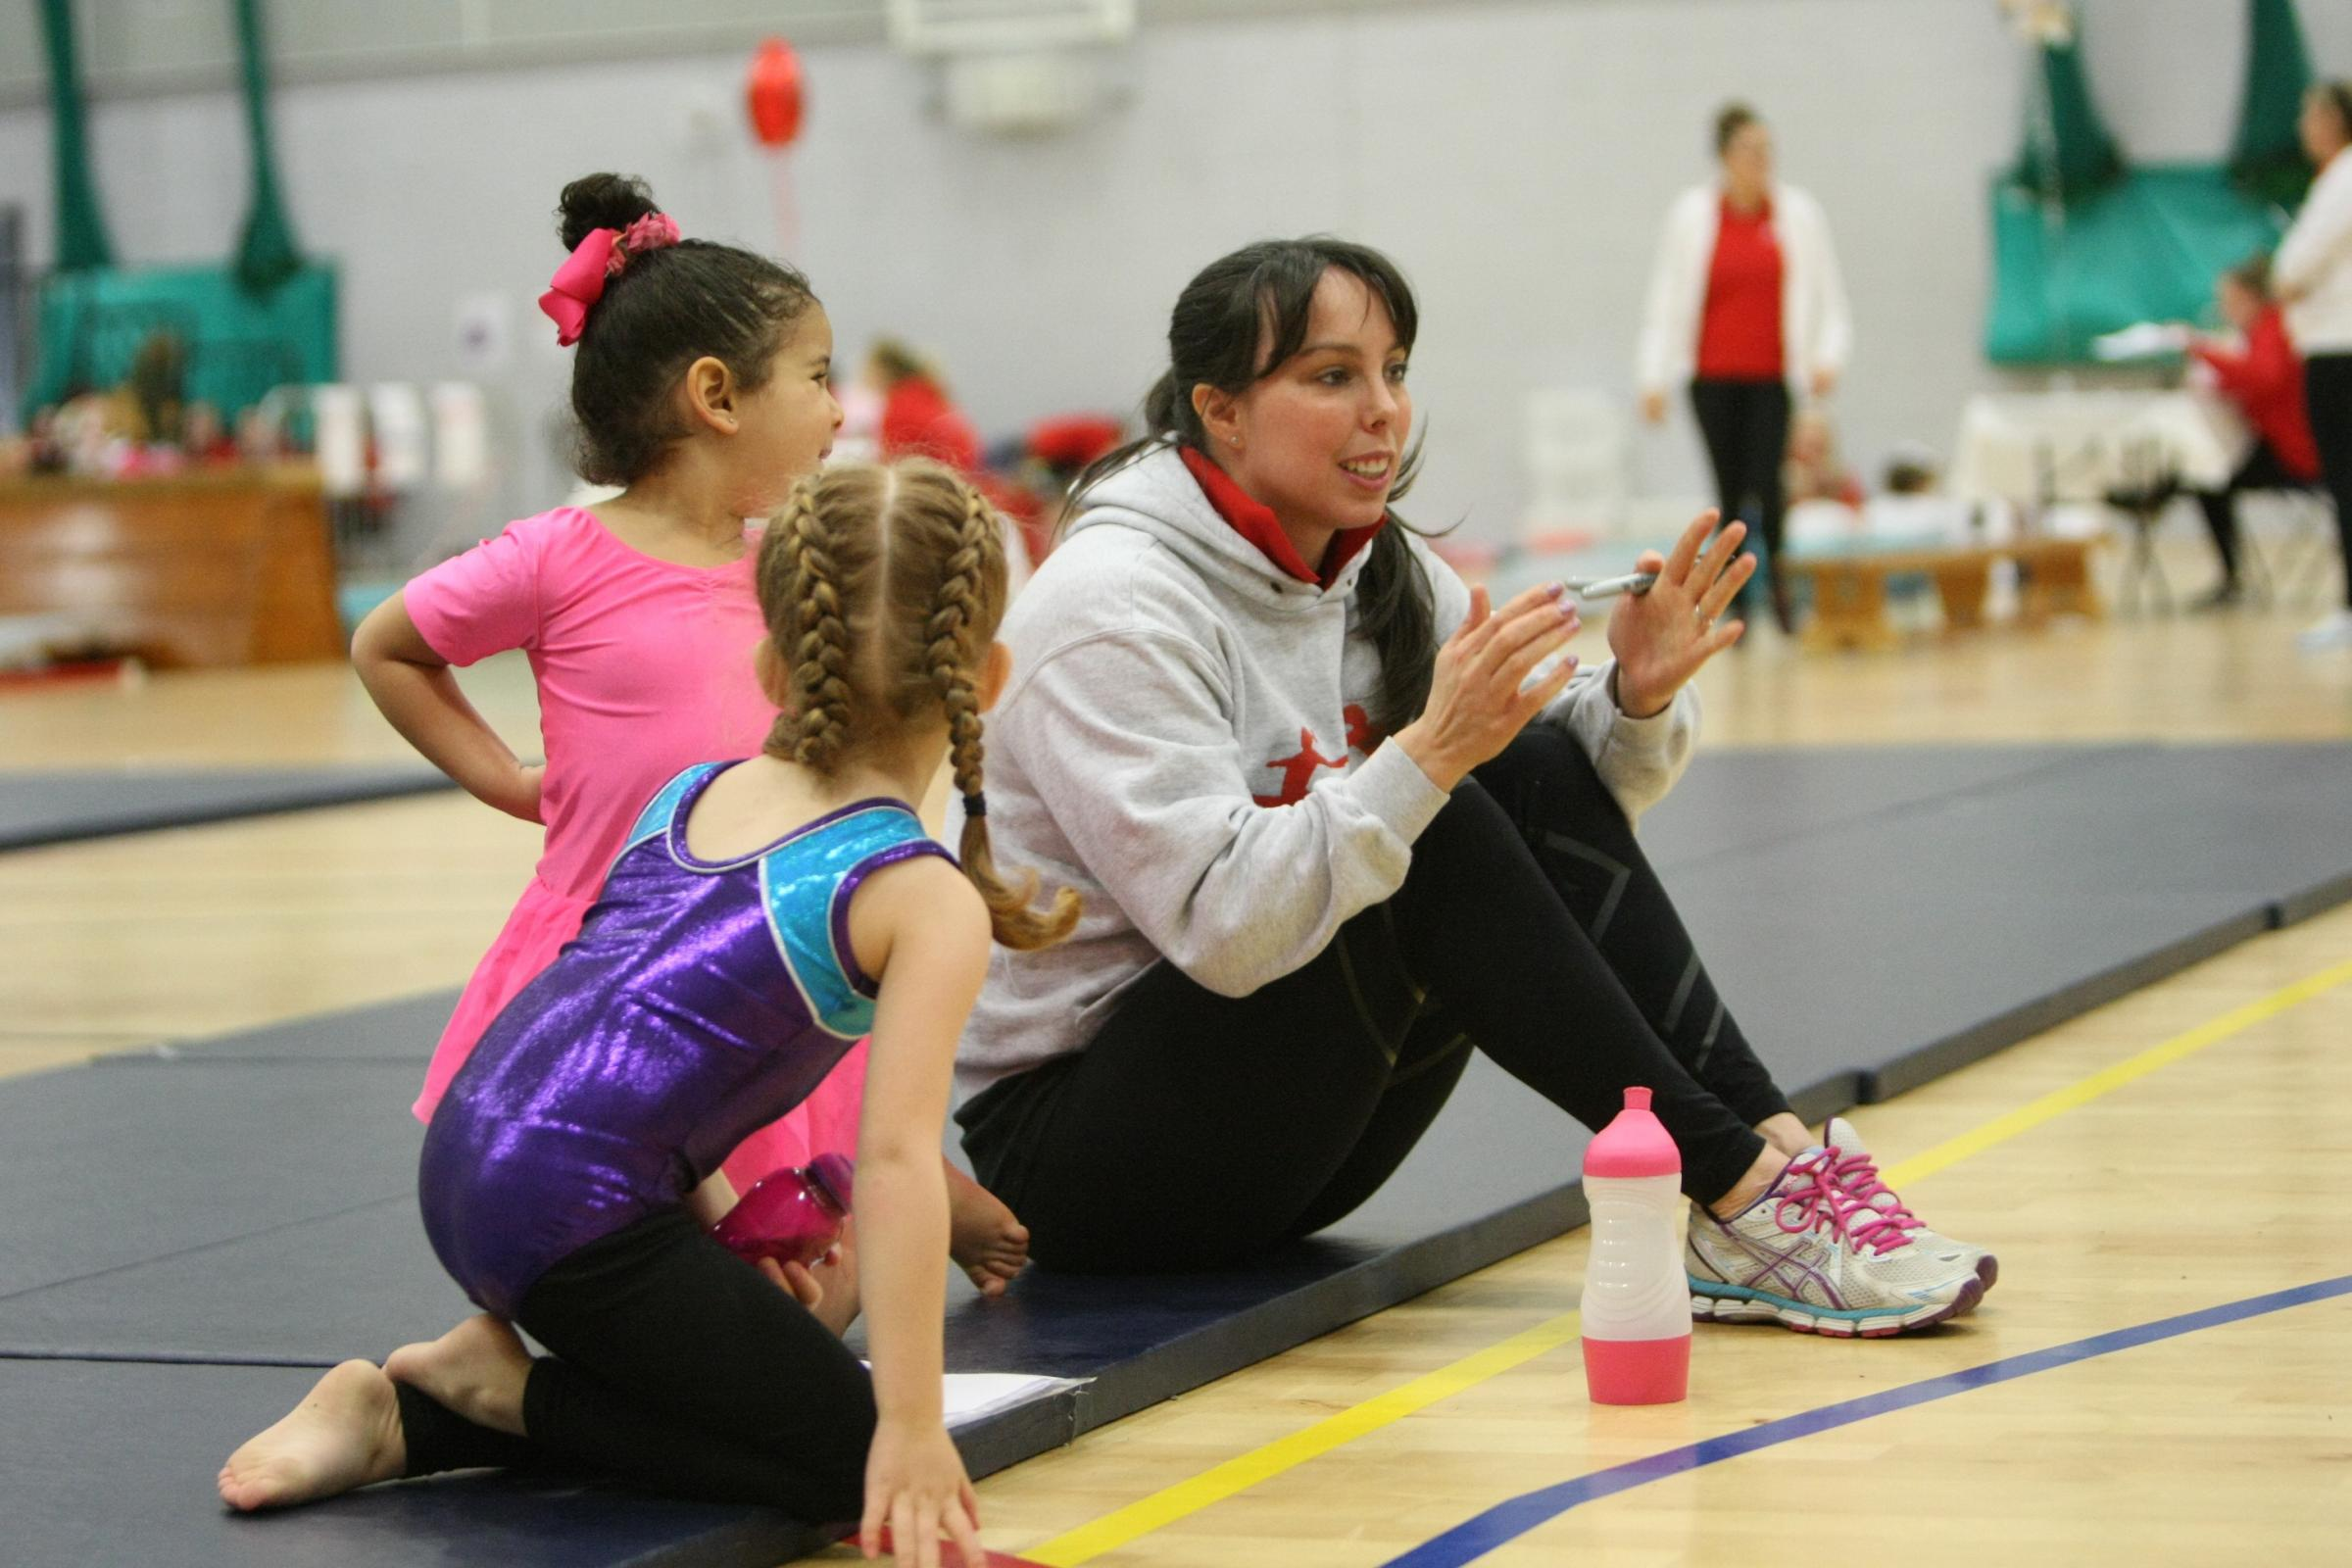 World Champion and Olympic Medallist, Beth Tweddle MBE, will be holding a free-to-attend gymnastics evening at Thornleigh Salesian College, Bolton on June 22, for ages 2-7.